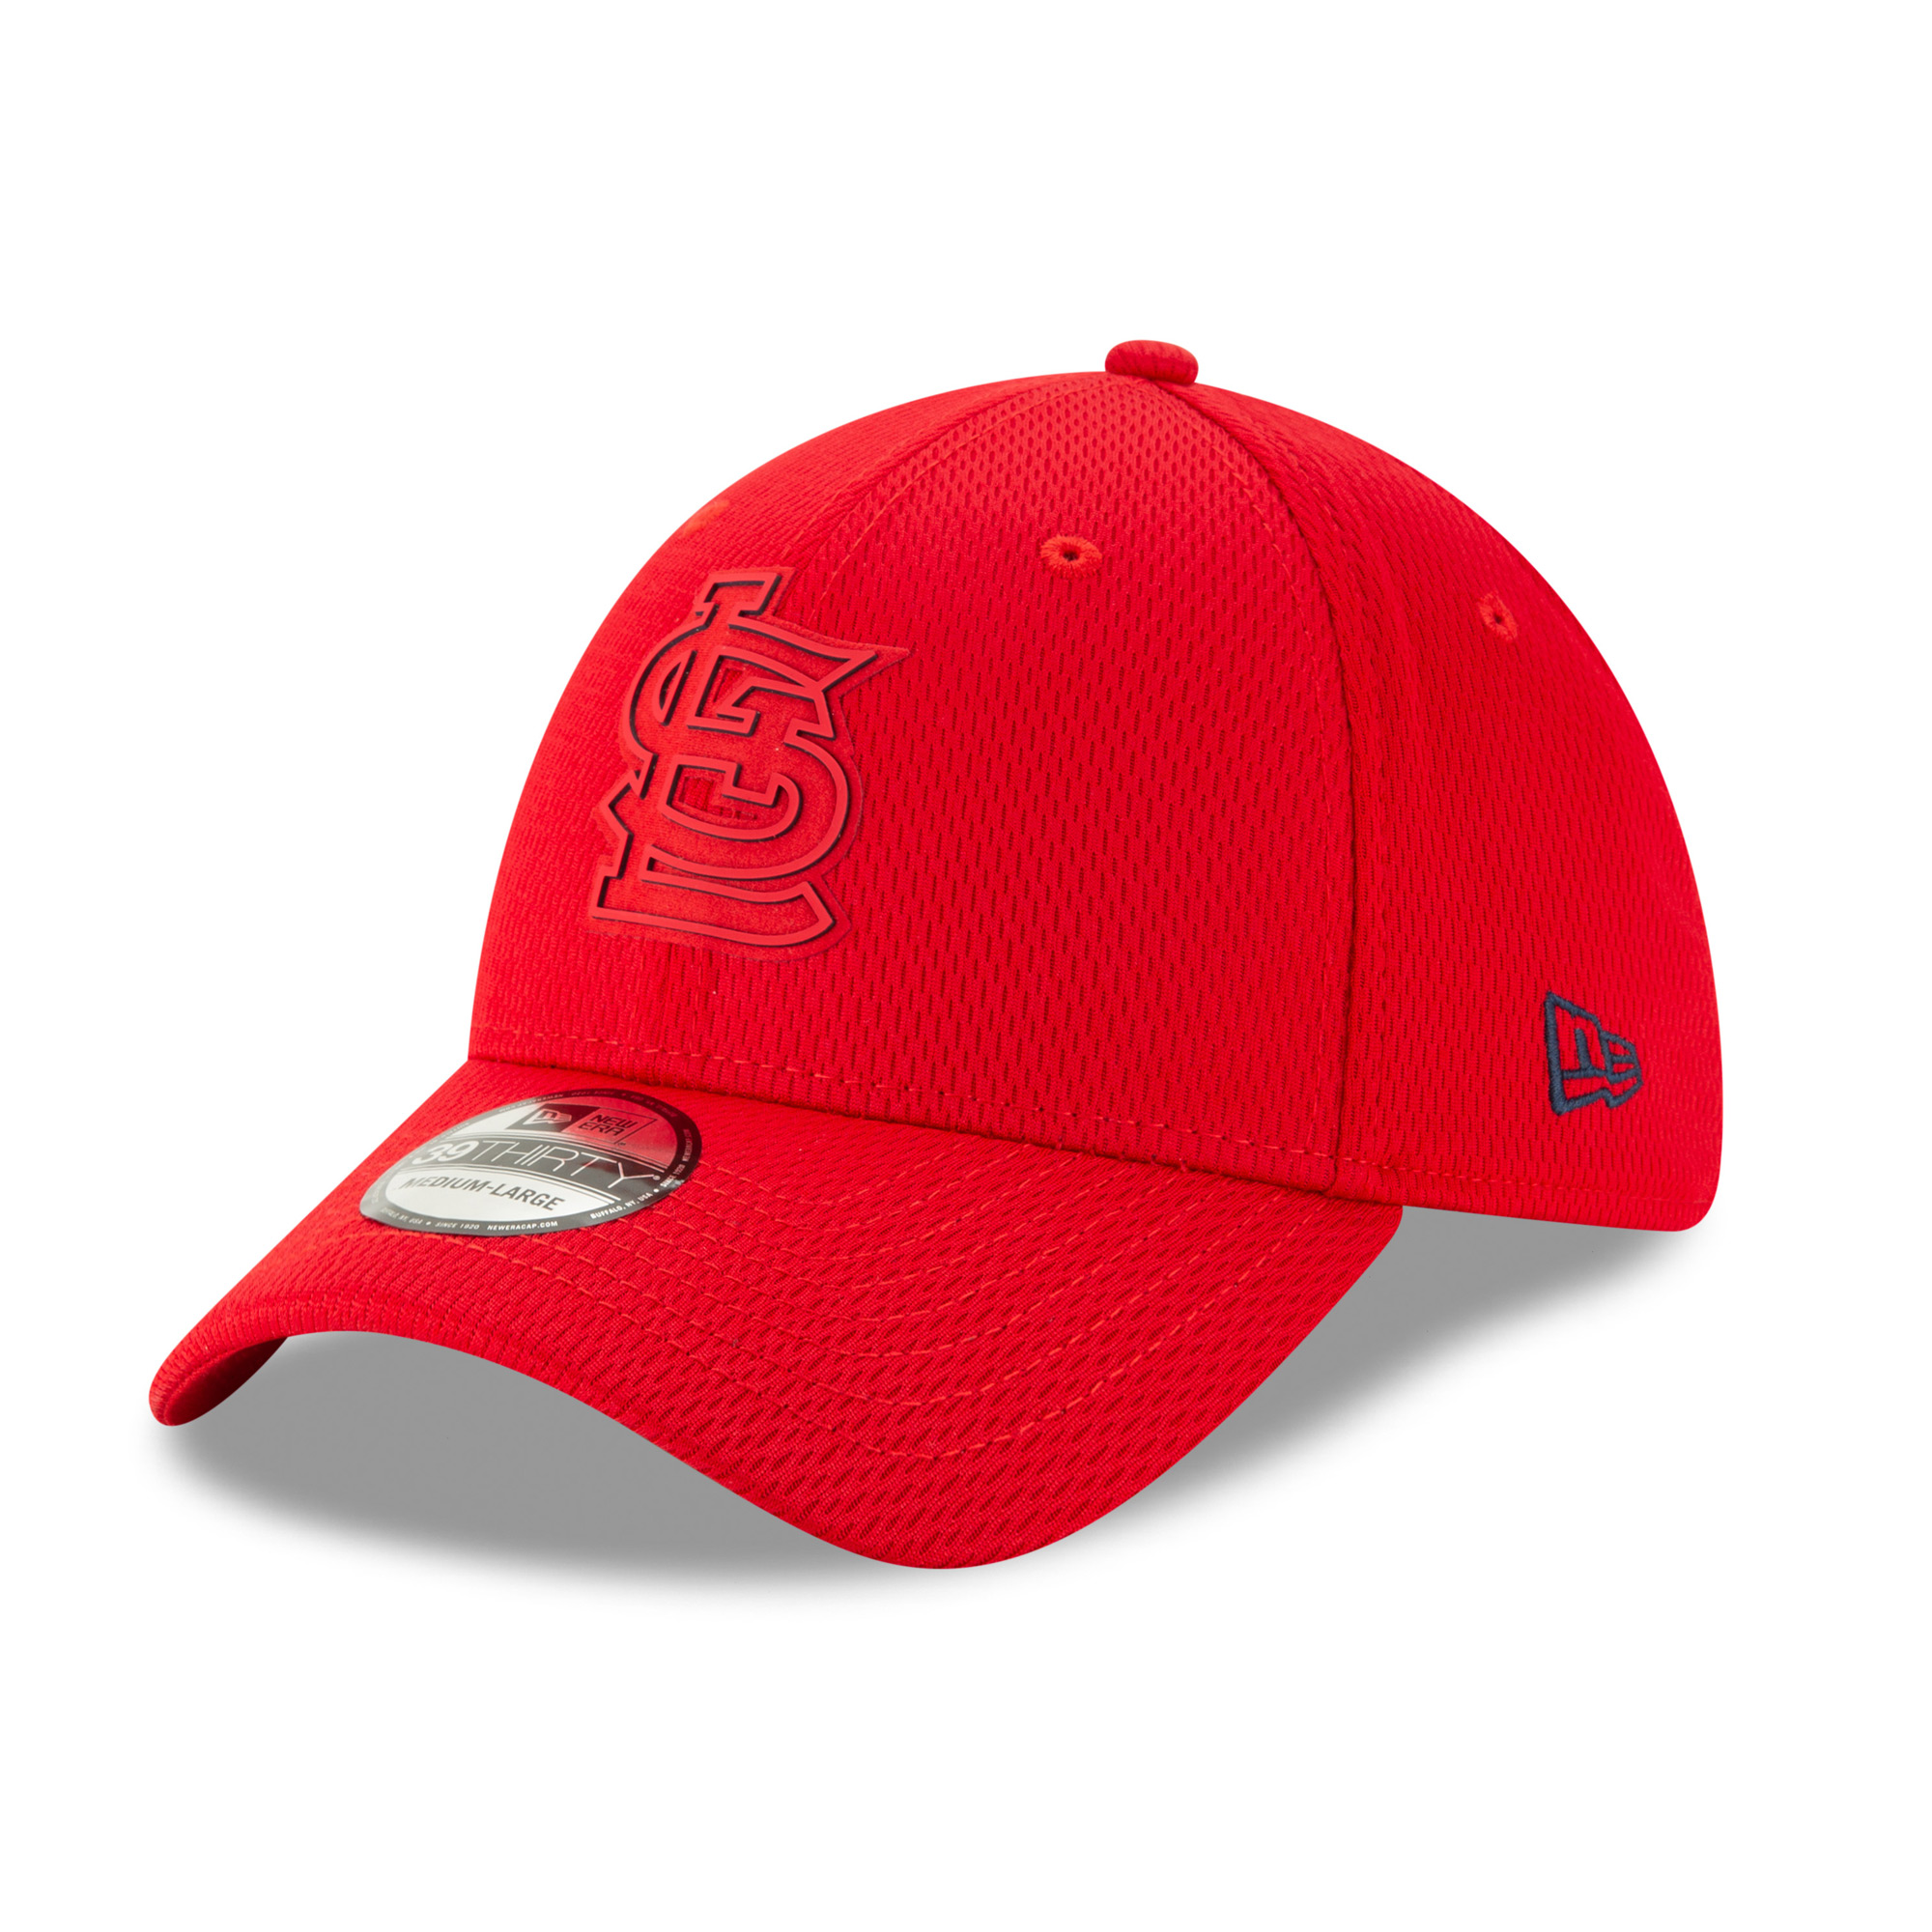 St. Louis Cardinals New Era 2019 Clubhouse Collection 39THIRTY Flex Hat - Red